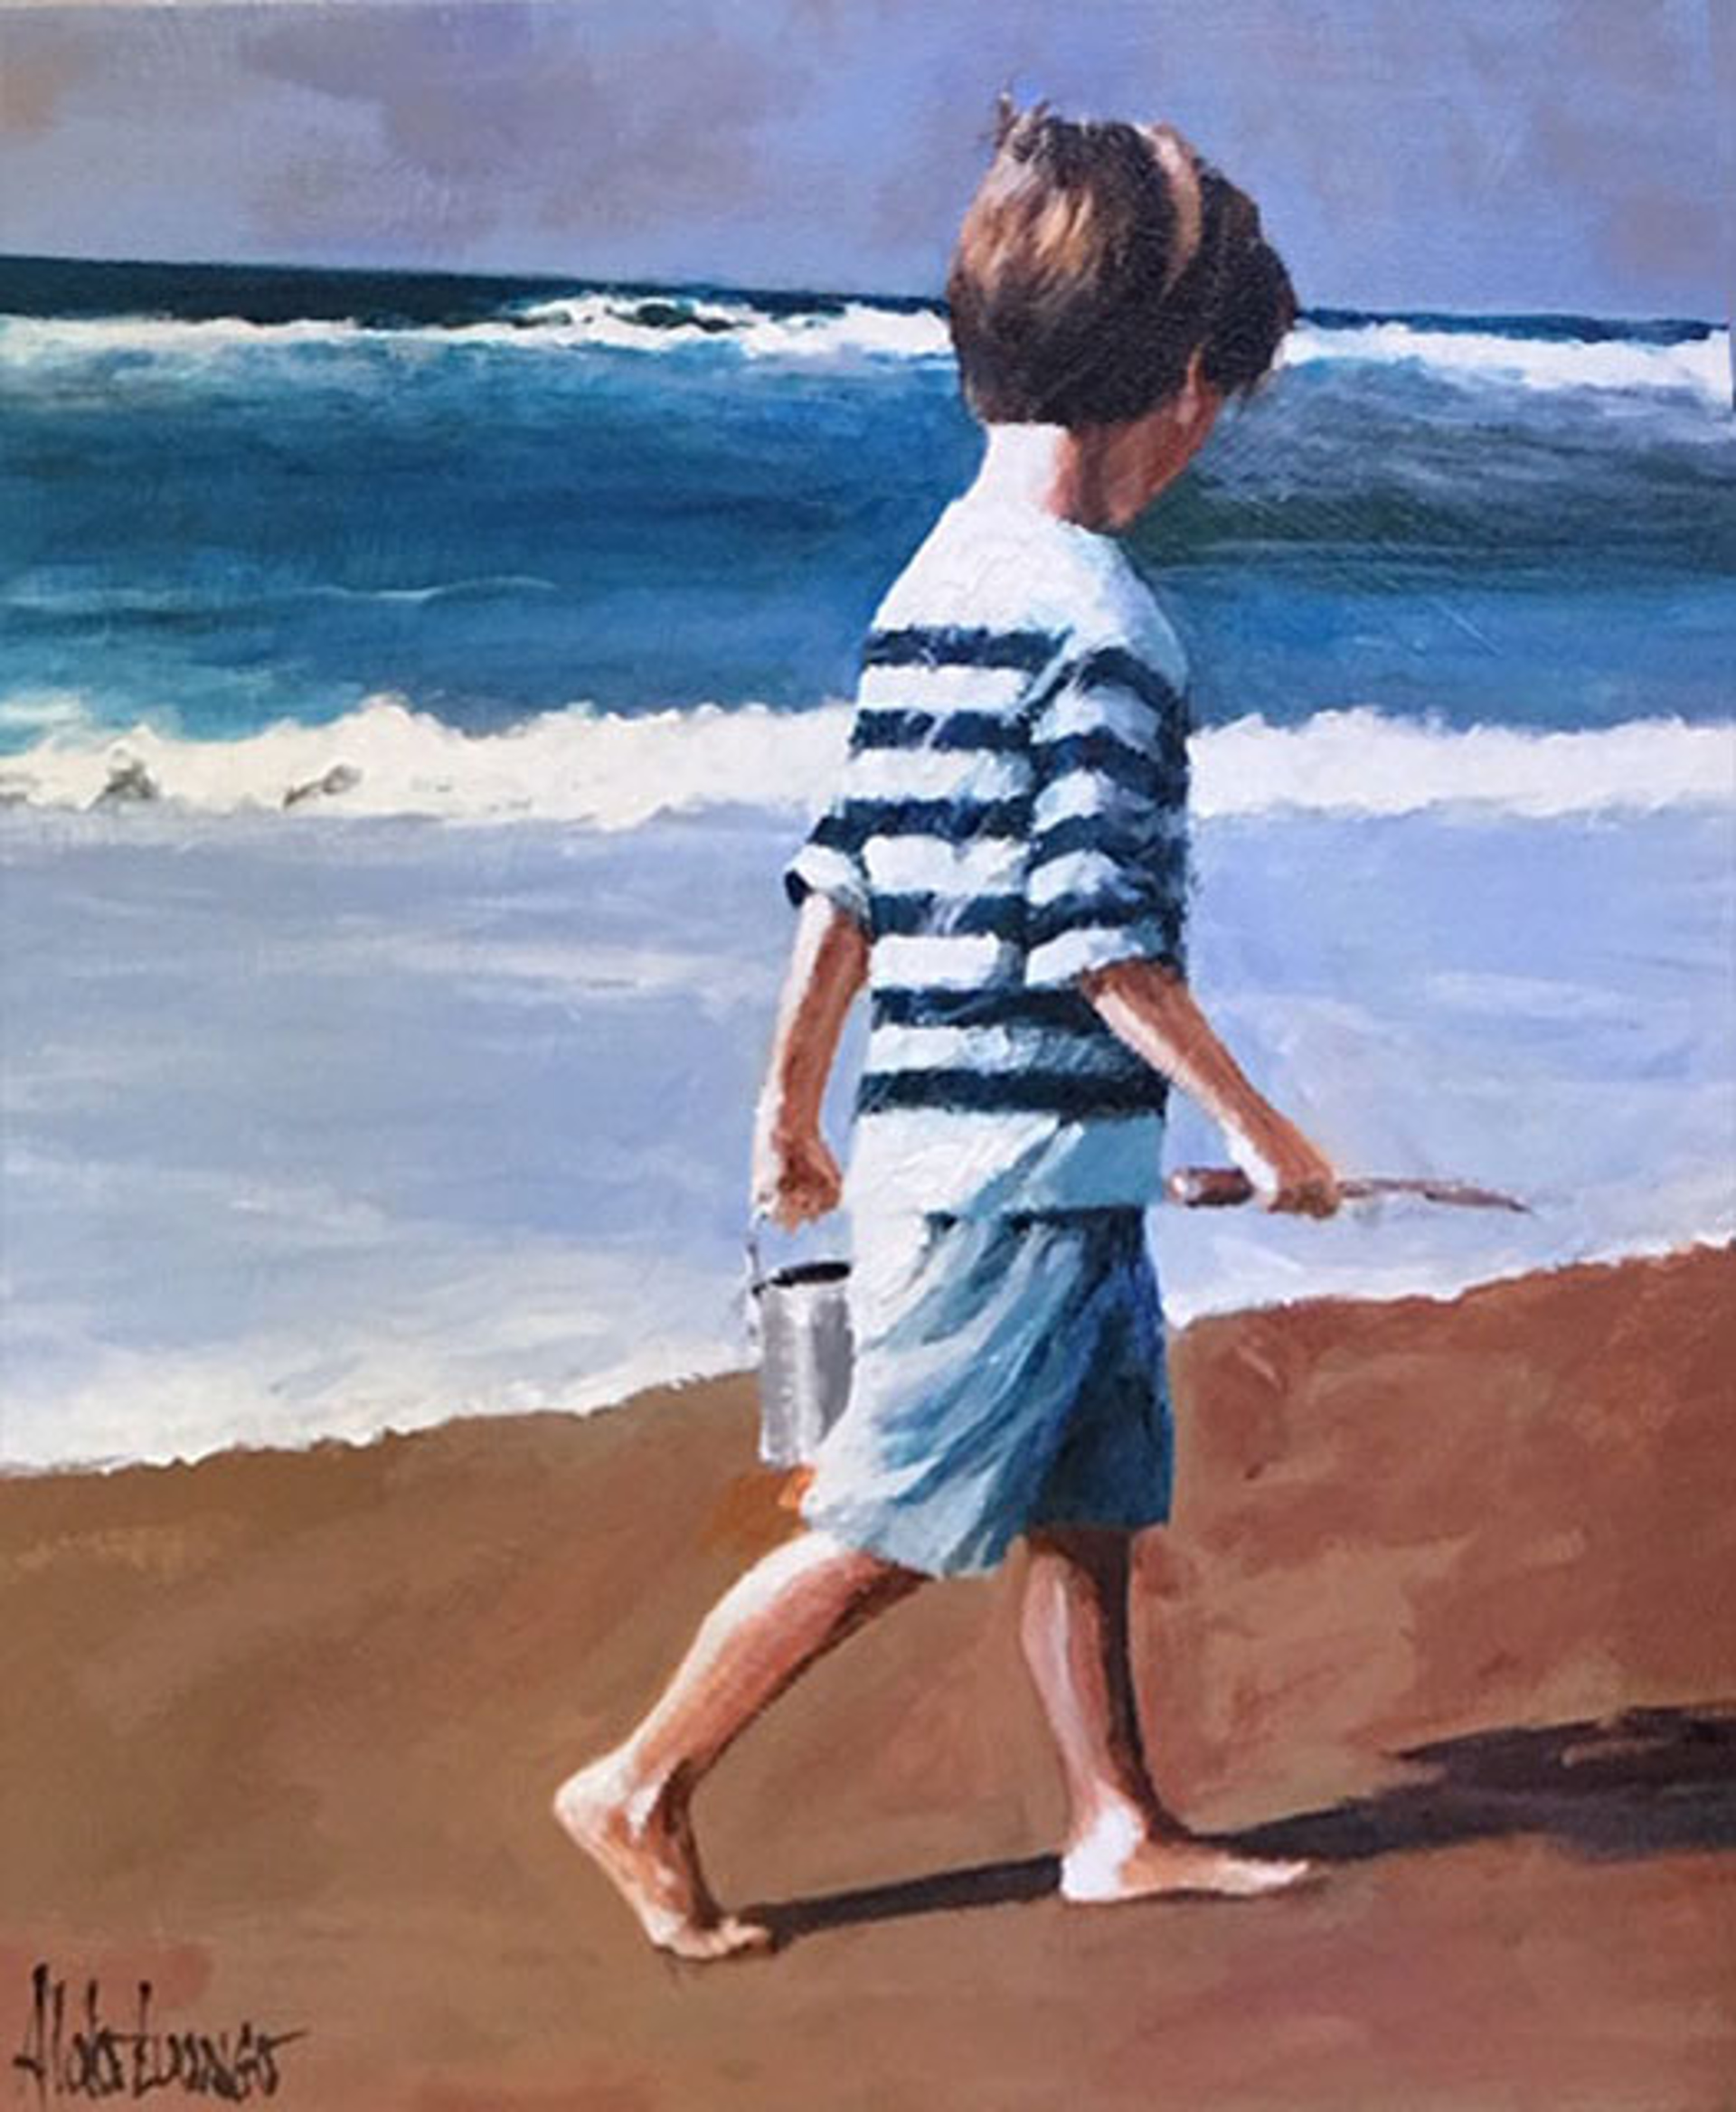 By The Sea I (Boy) by Aldo Luongo